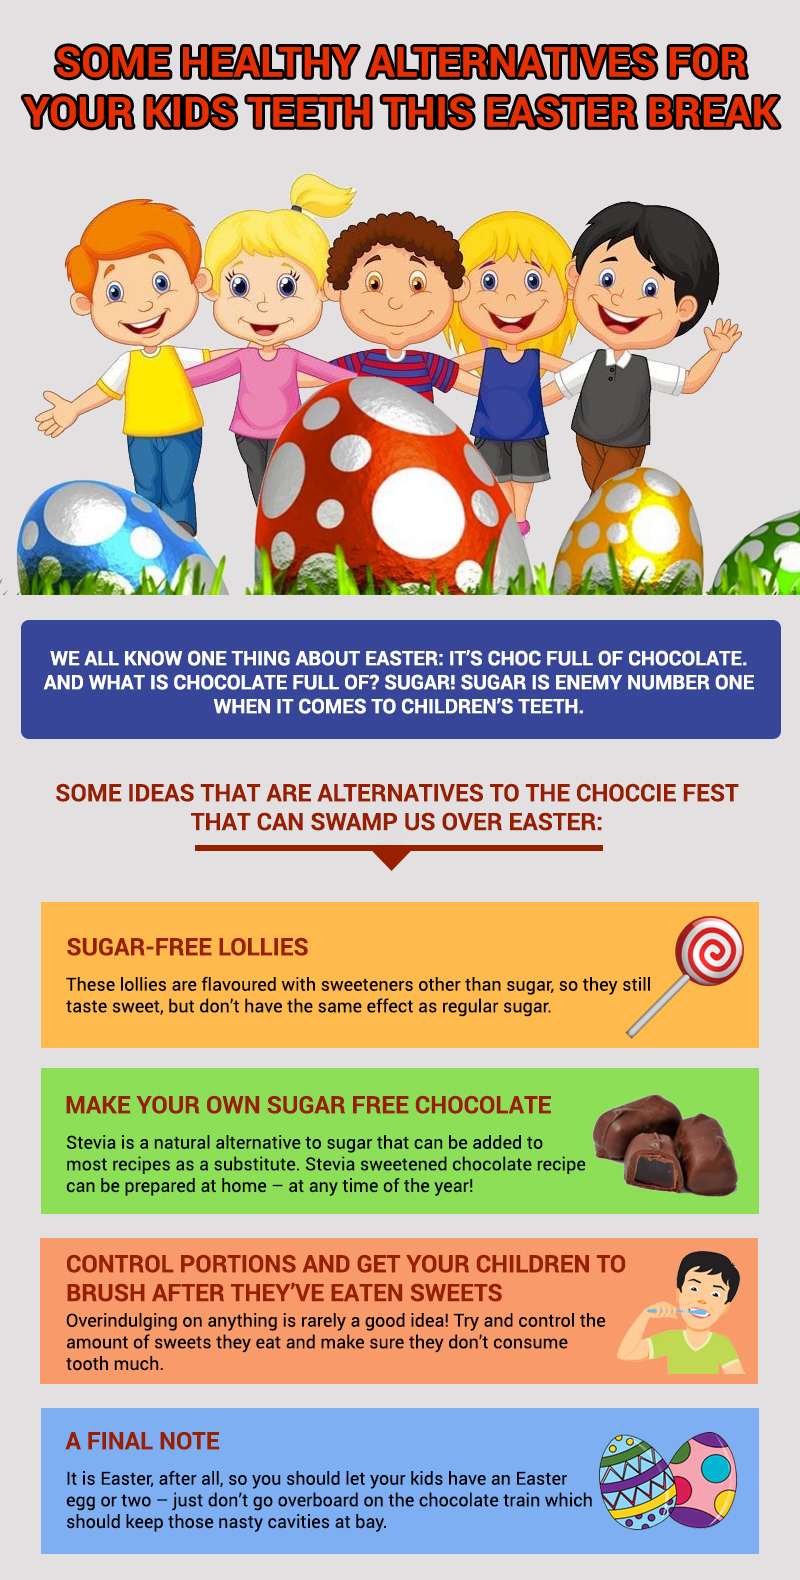 Some Healthy Alternatives for Your Kids Teeth This Easter Break